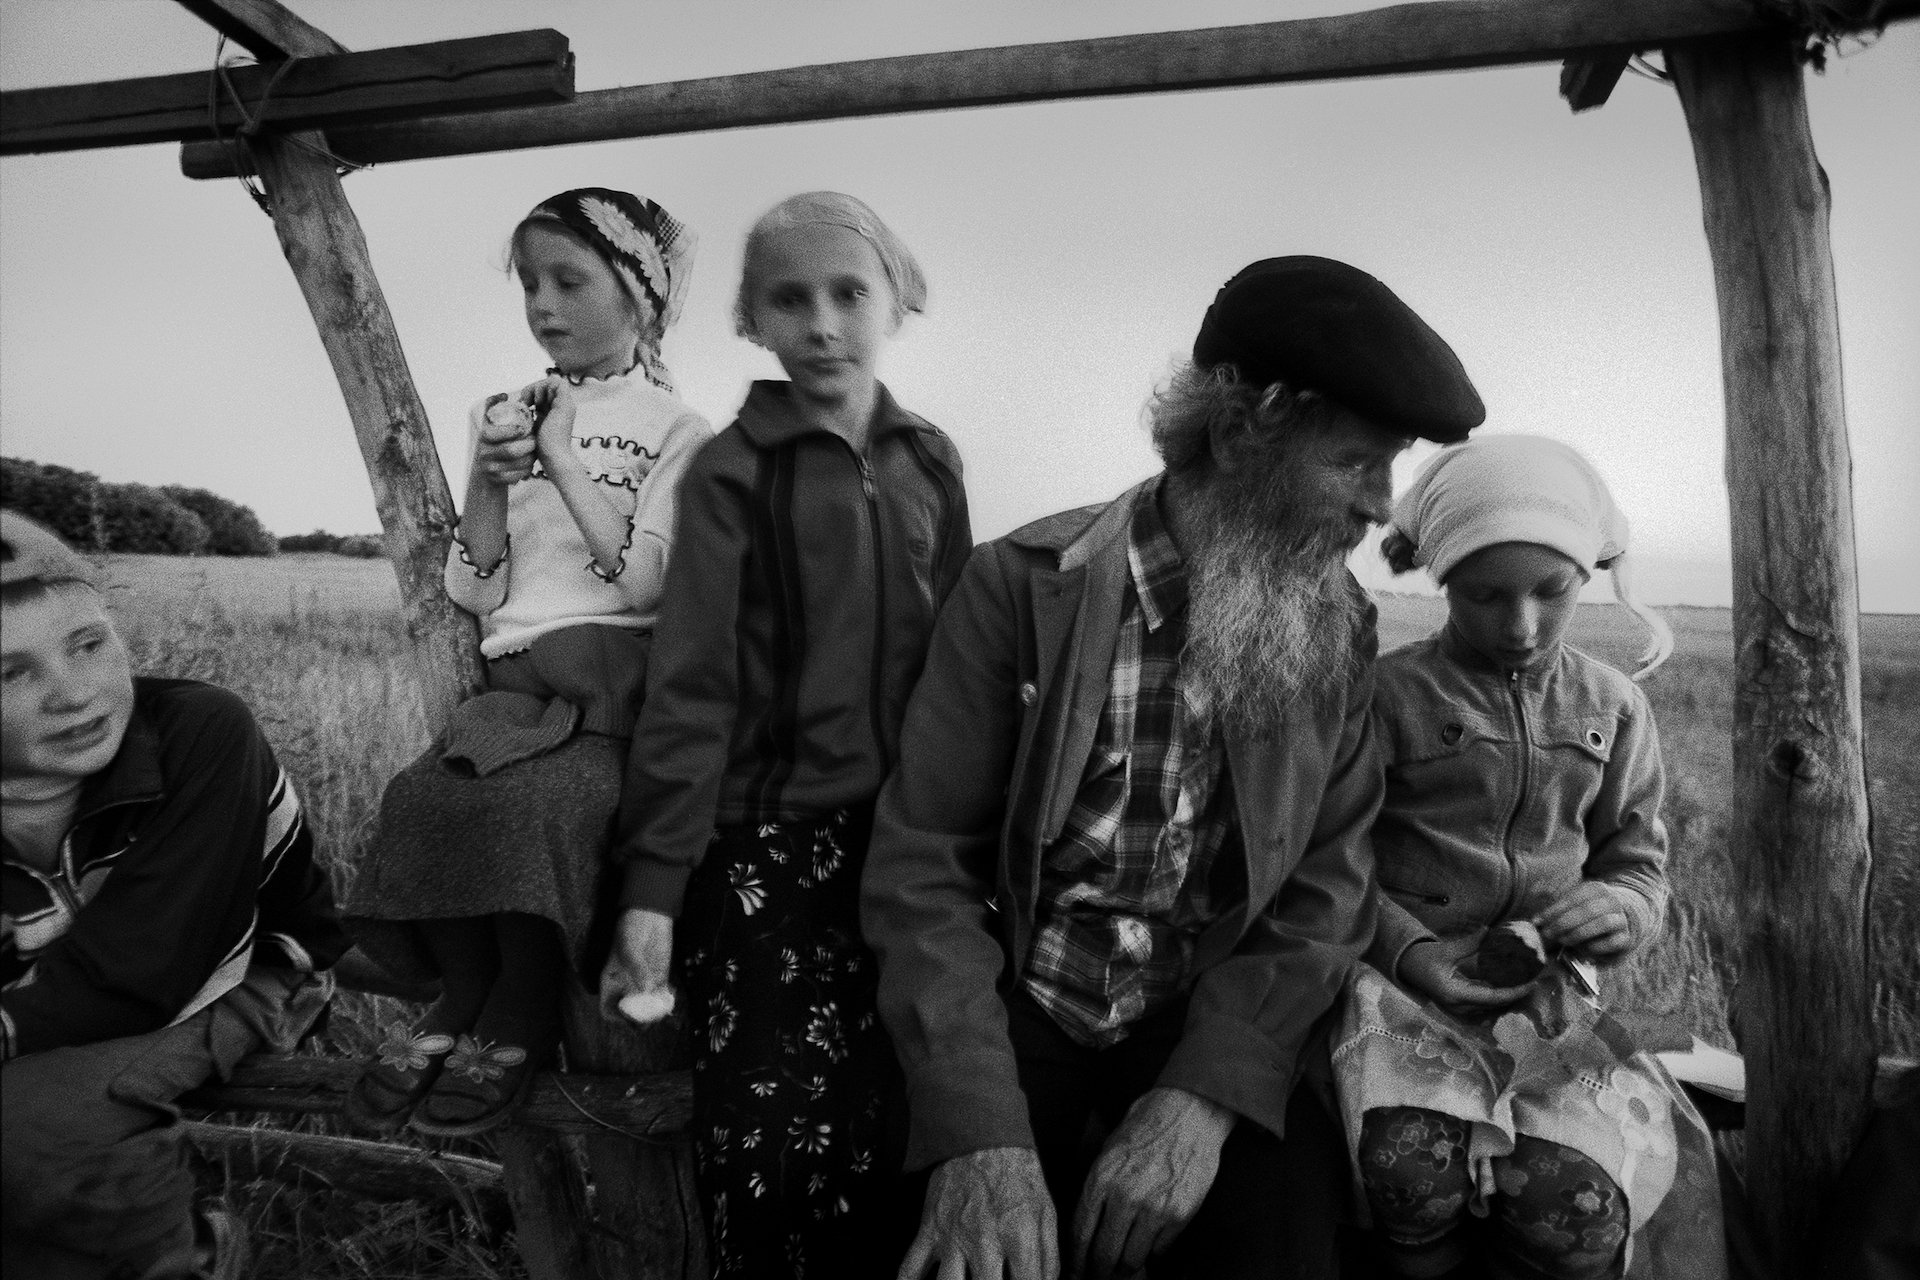 Children and Mentor, village of Poteryaevka, Mamontovo district, Altai territory, Russia (2008)